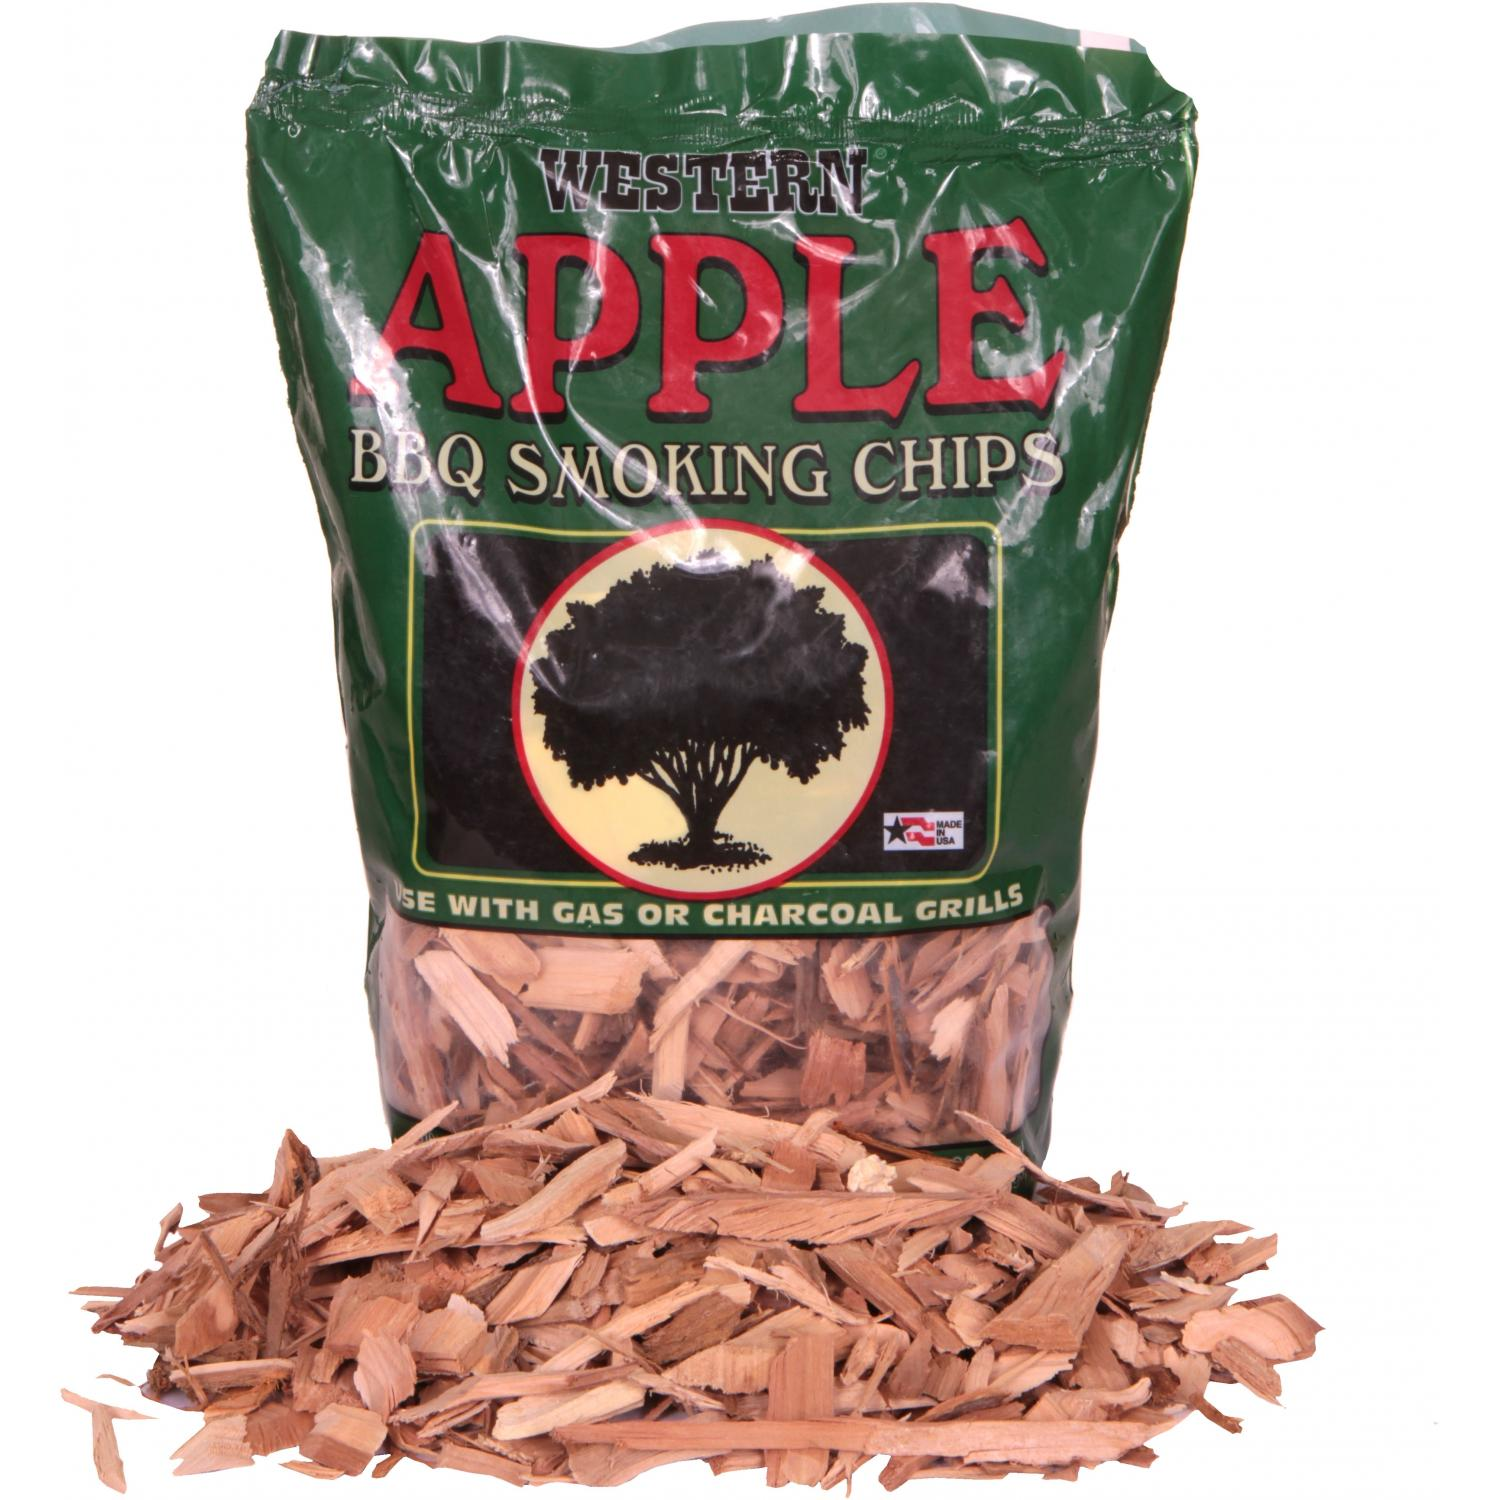 Western Apple Bbq Smoking Chips (180 Cu. In.) at Sears.com